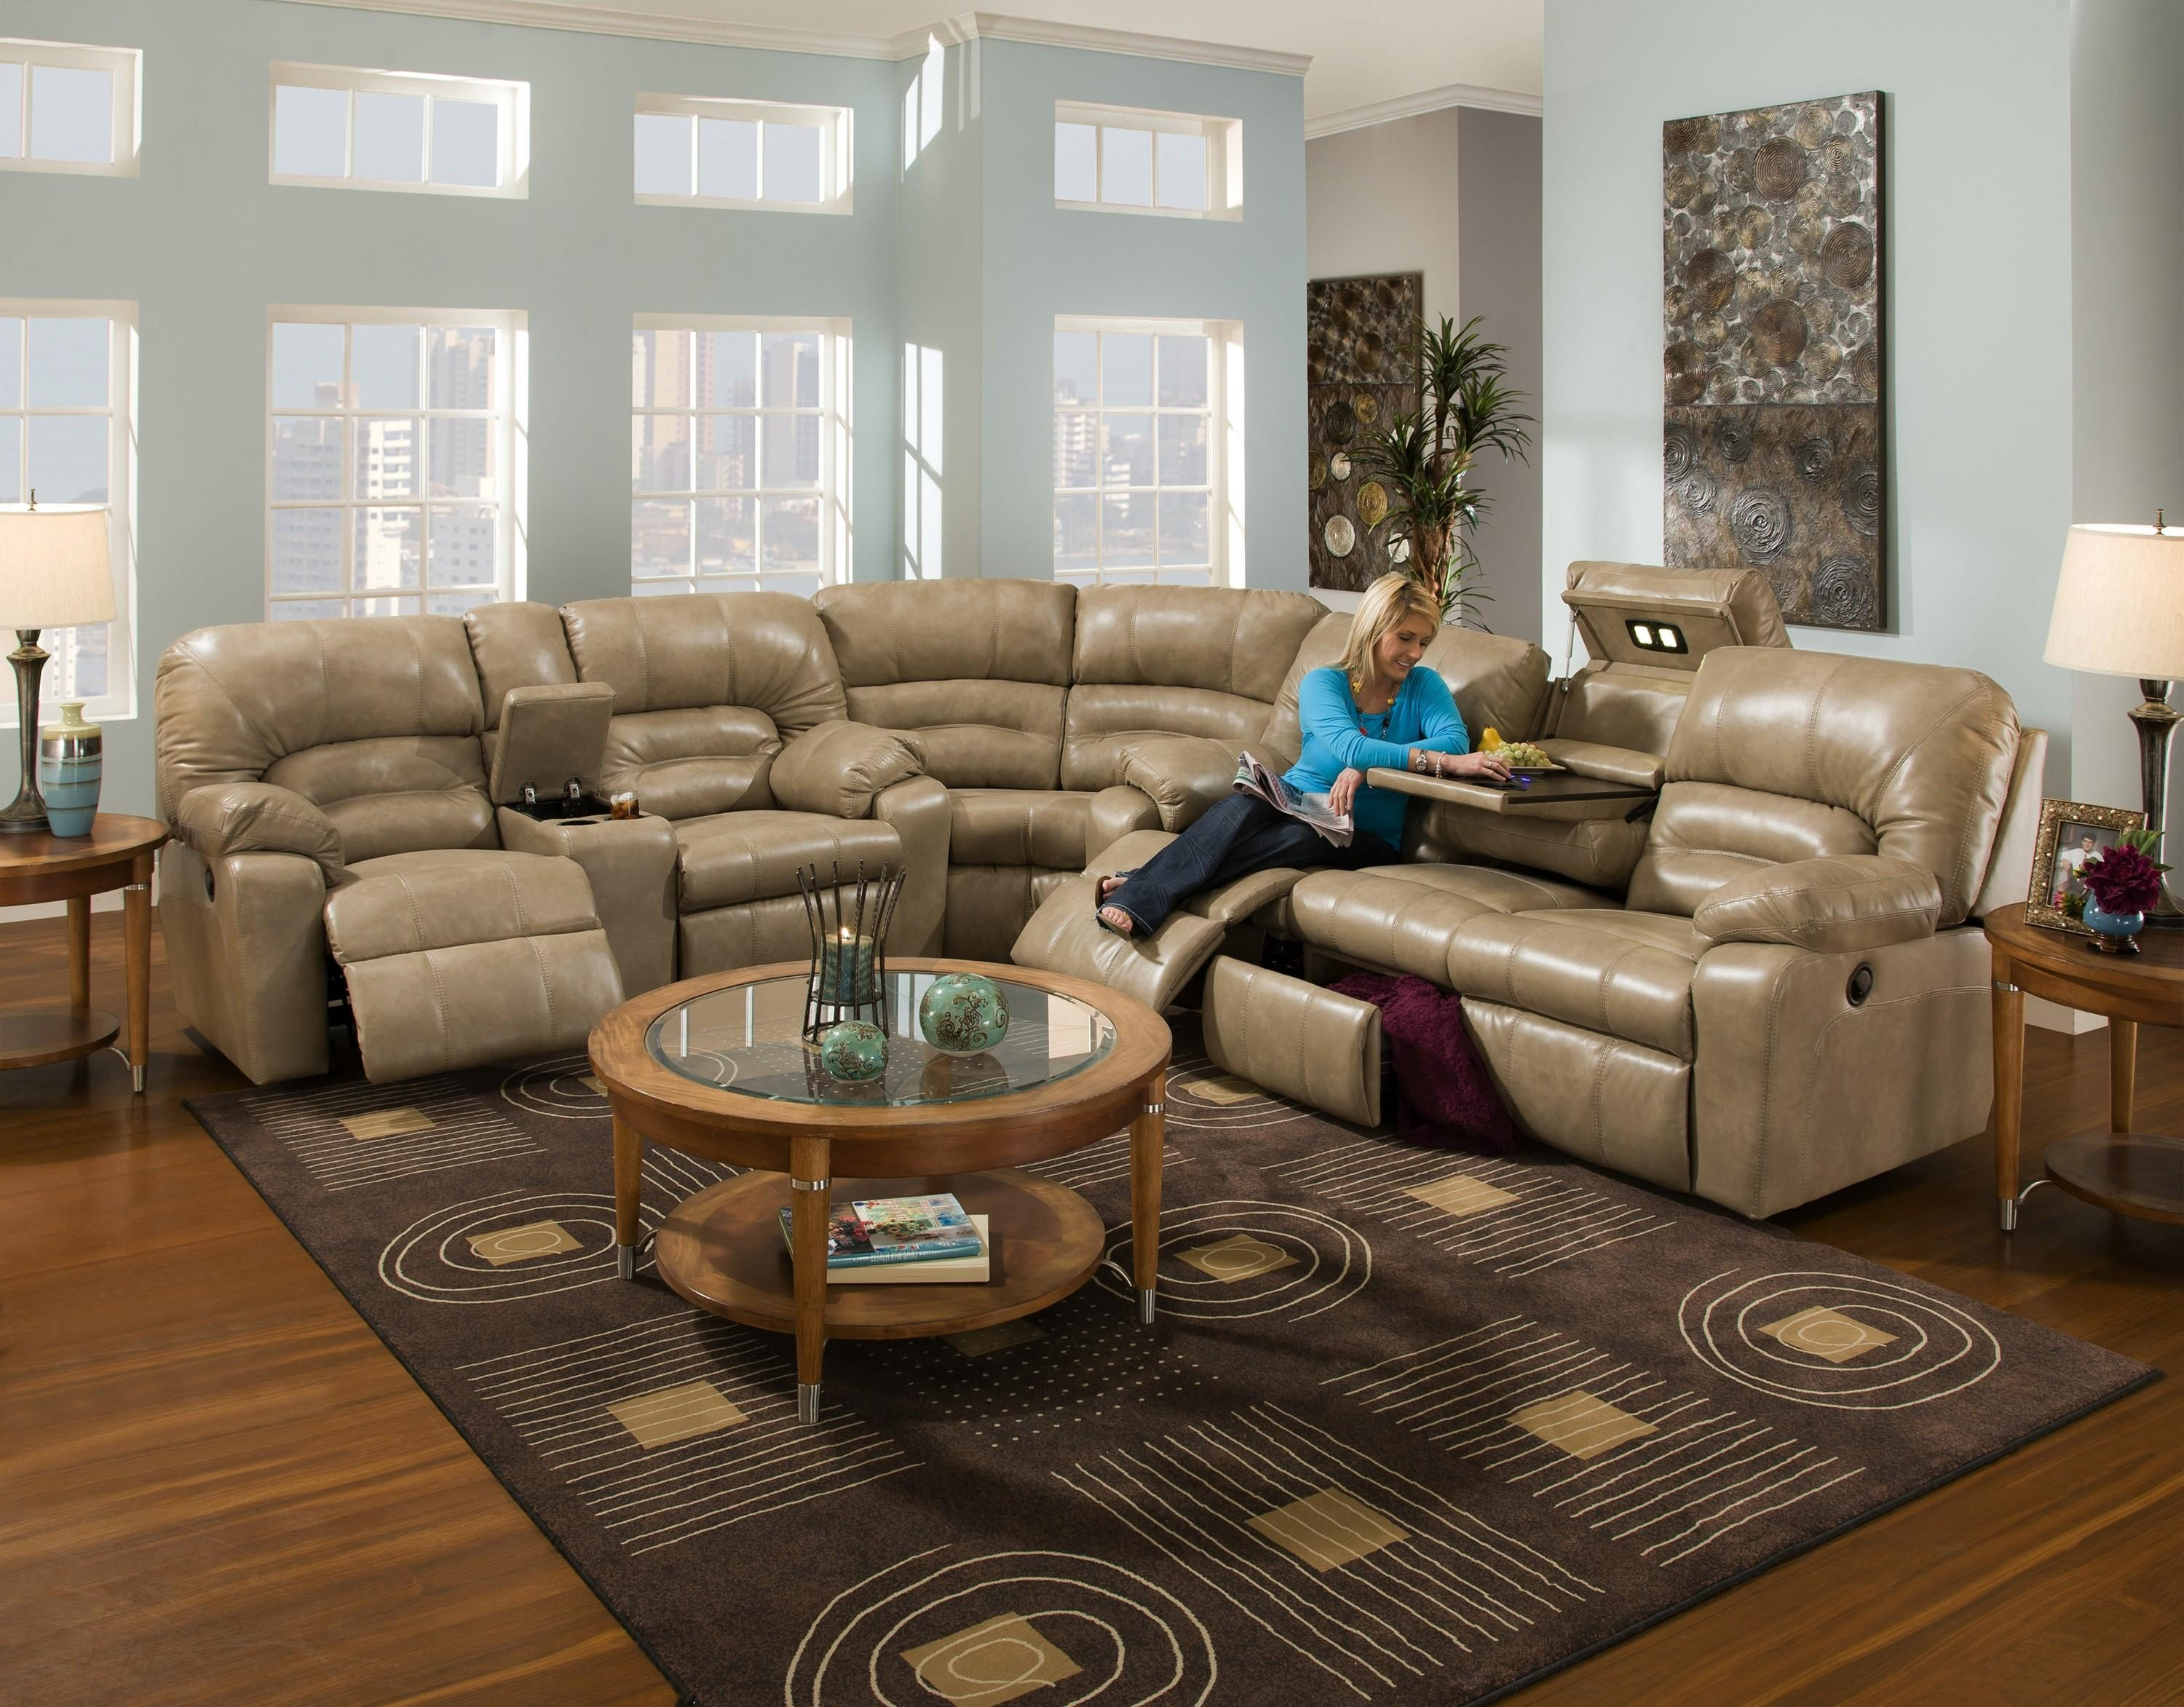 Interior: Inexpensive Sectionals And Cheap Leather Sectionals Inside Inexpensive Sectionals (Image 10 of 20)